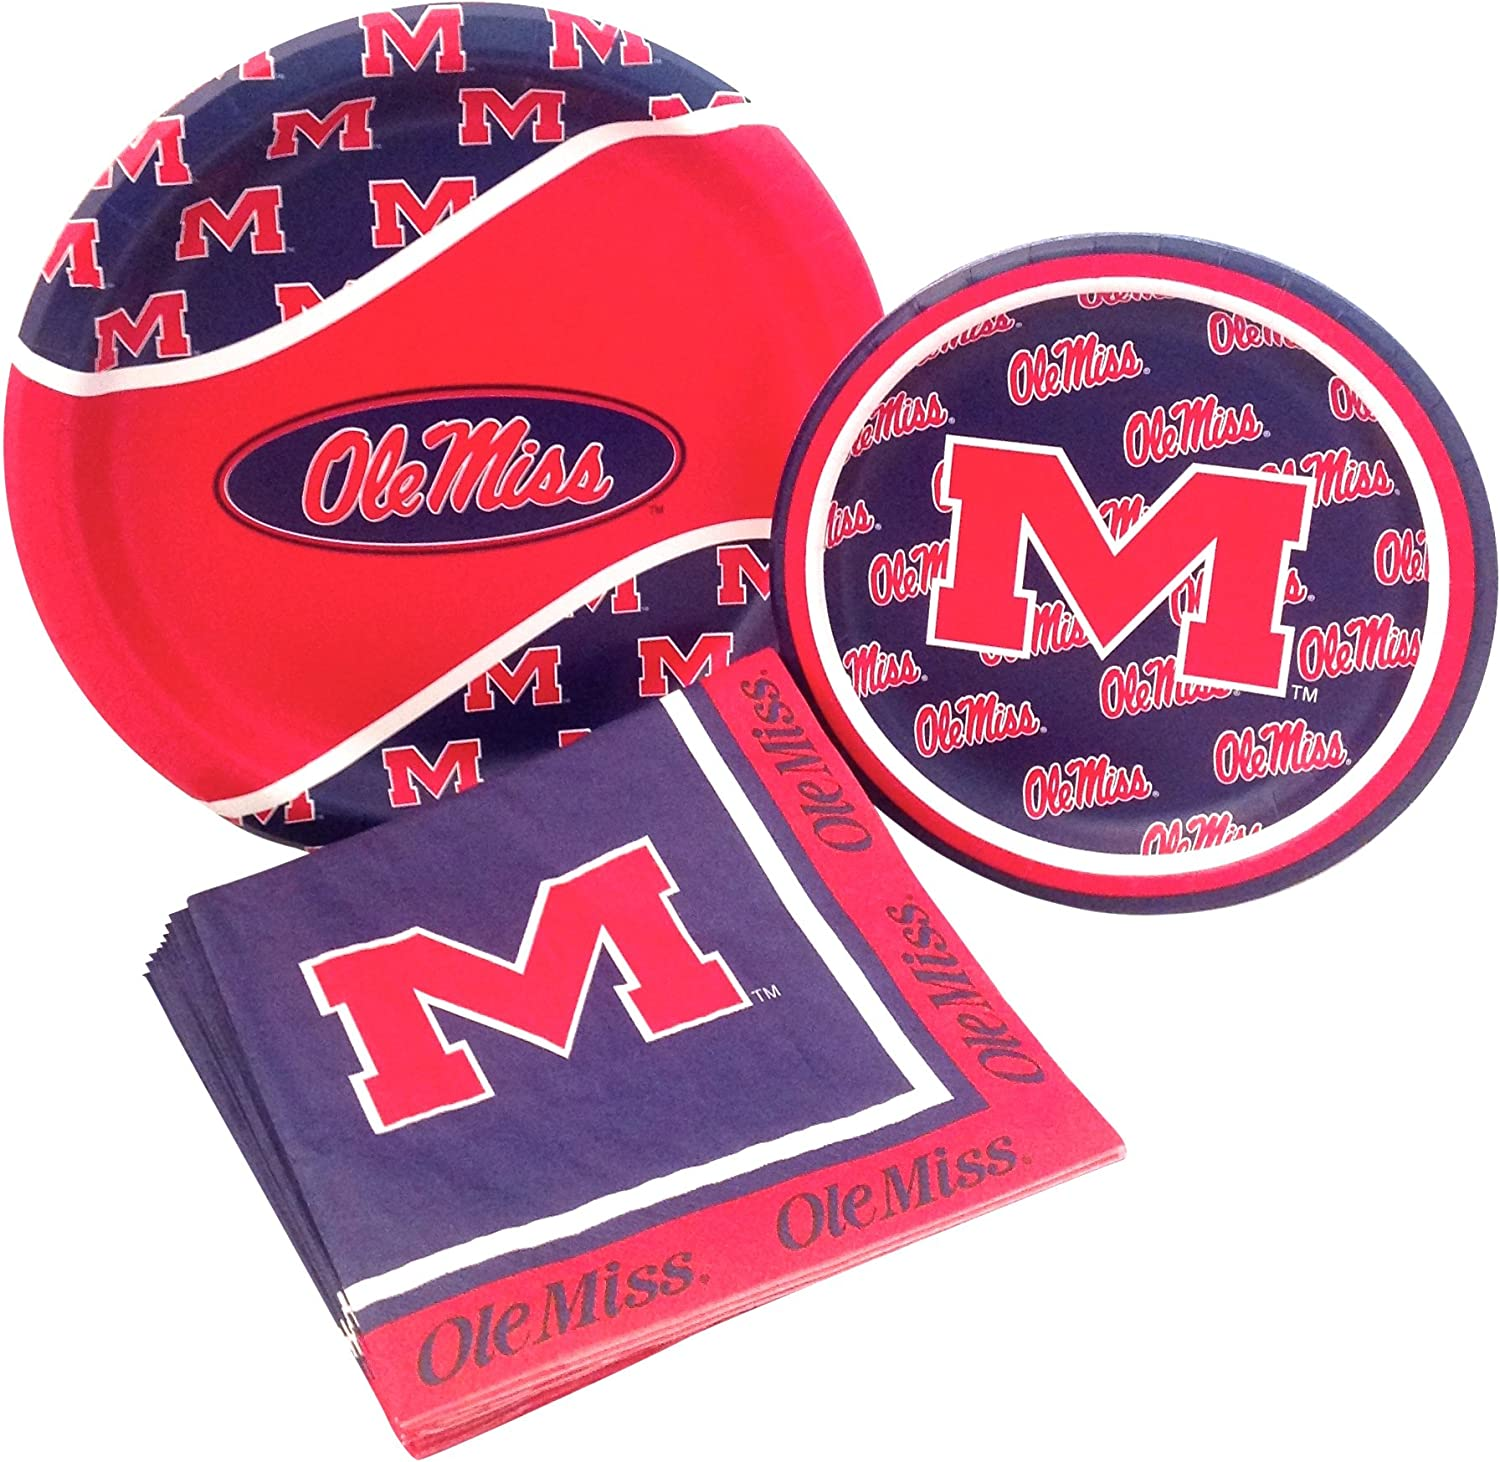 University of Mississippi Rebels Party Supply Pack! Bundle Includes Paper Plates & Napkins for 8 Guests